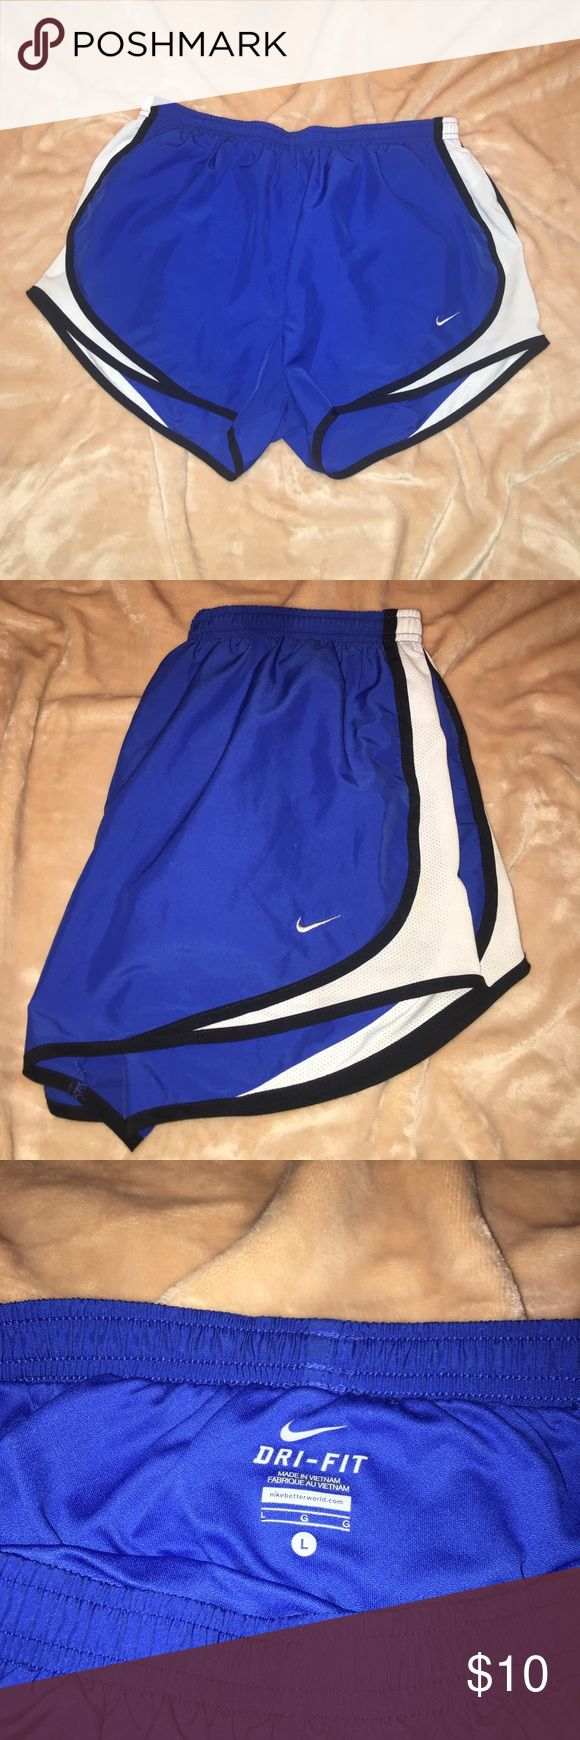 Royal blue Nike Dri-Fit athletic shorts Royal Blue/White Nike Dri-Fit Athletic Shorts. Size large. Missing drawstring but otherwise in great condition. Nike Shorts